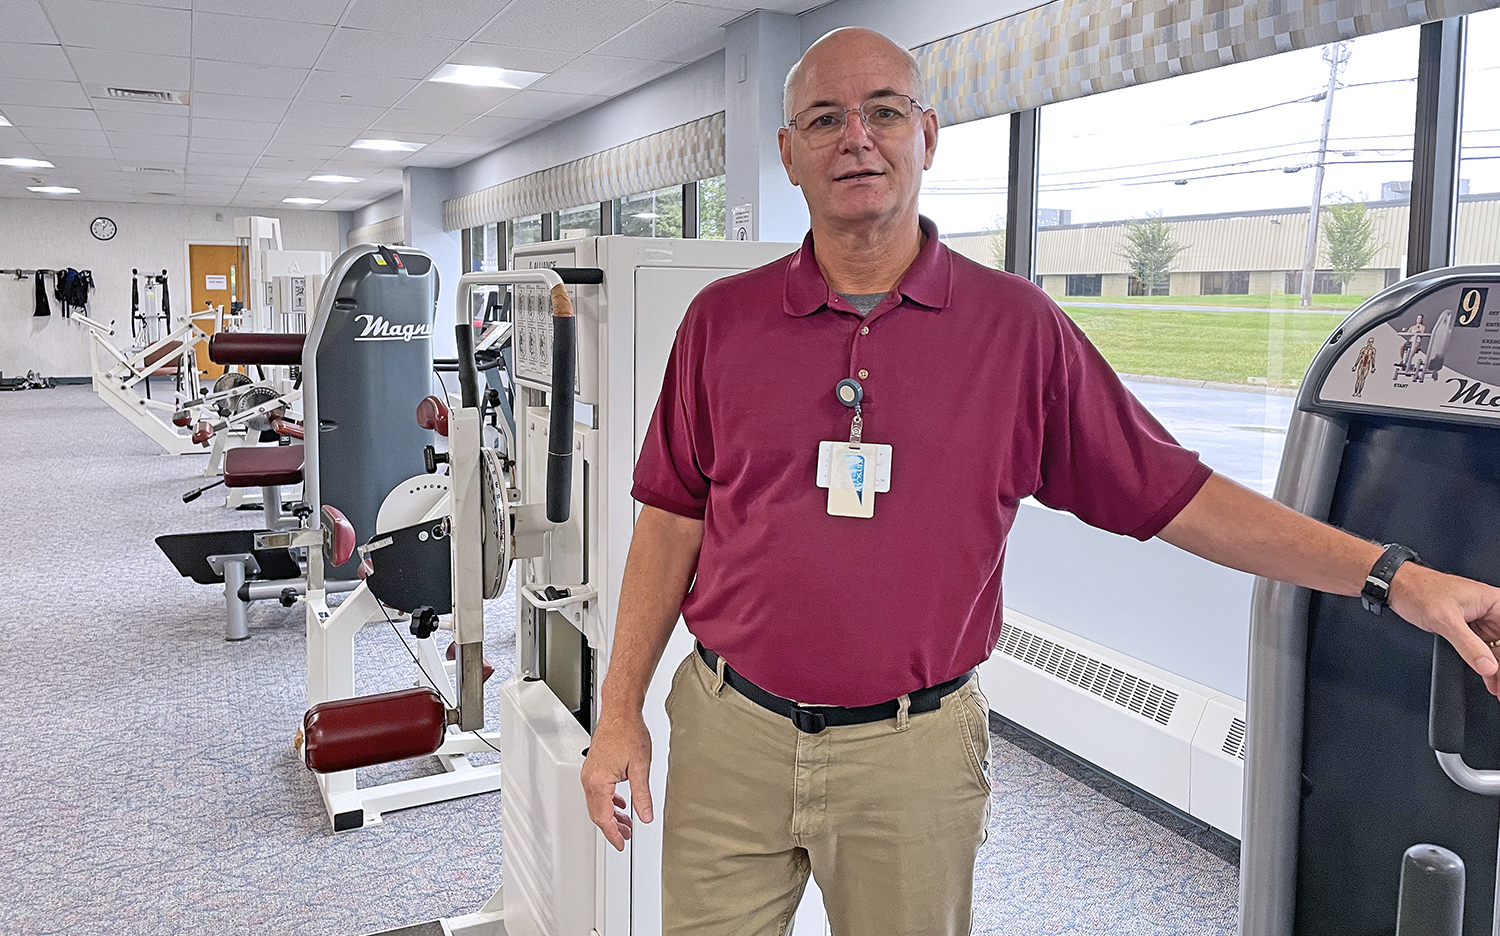 The Whittier Way: Michael Griffin, MSPT, discusses the different approach to Physical Therapy at Whittier Rehabilitation Hospital-Westborough's Outpatient Clinic